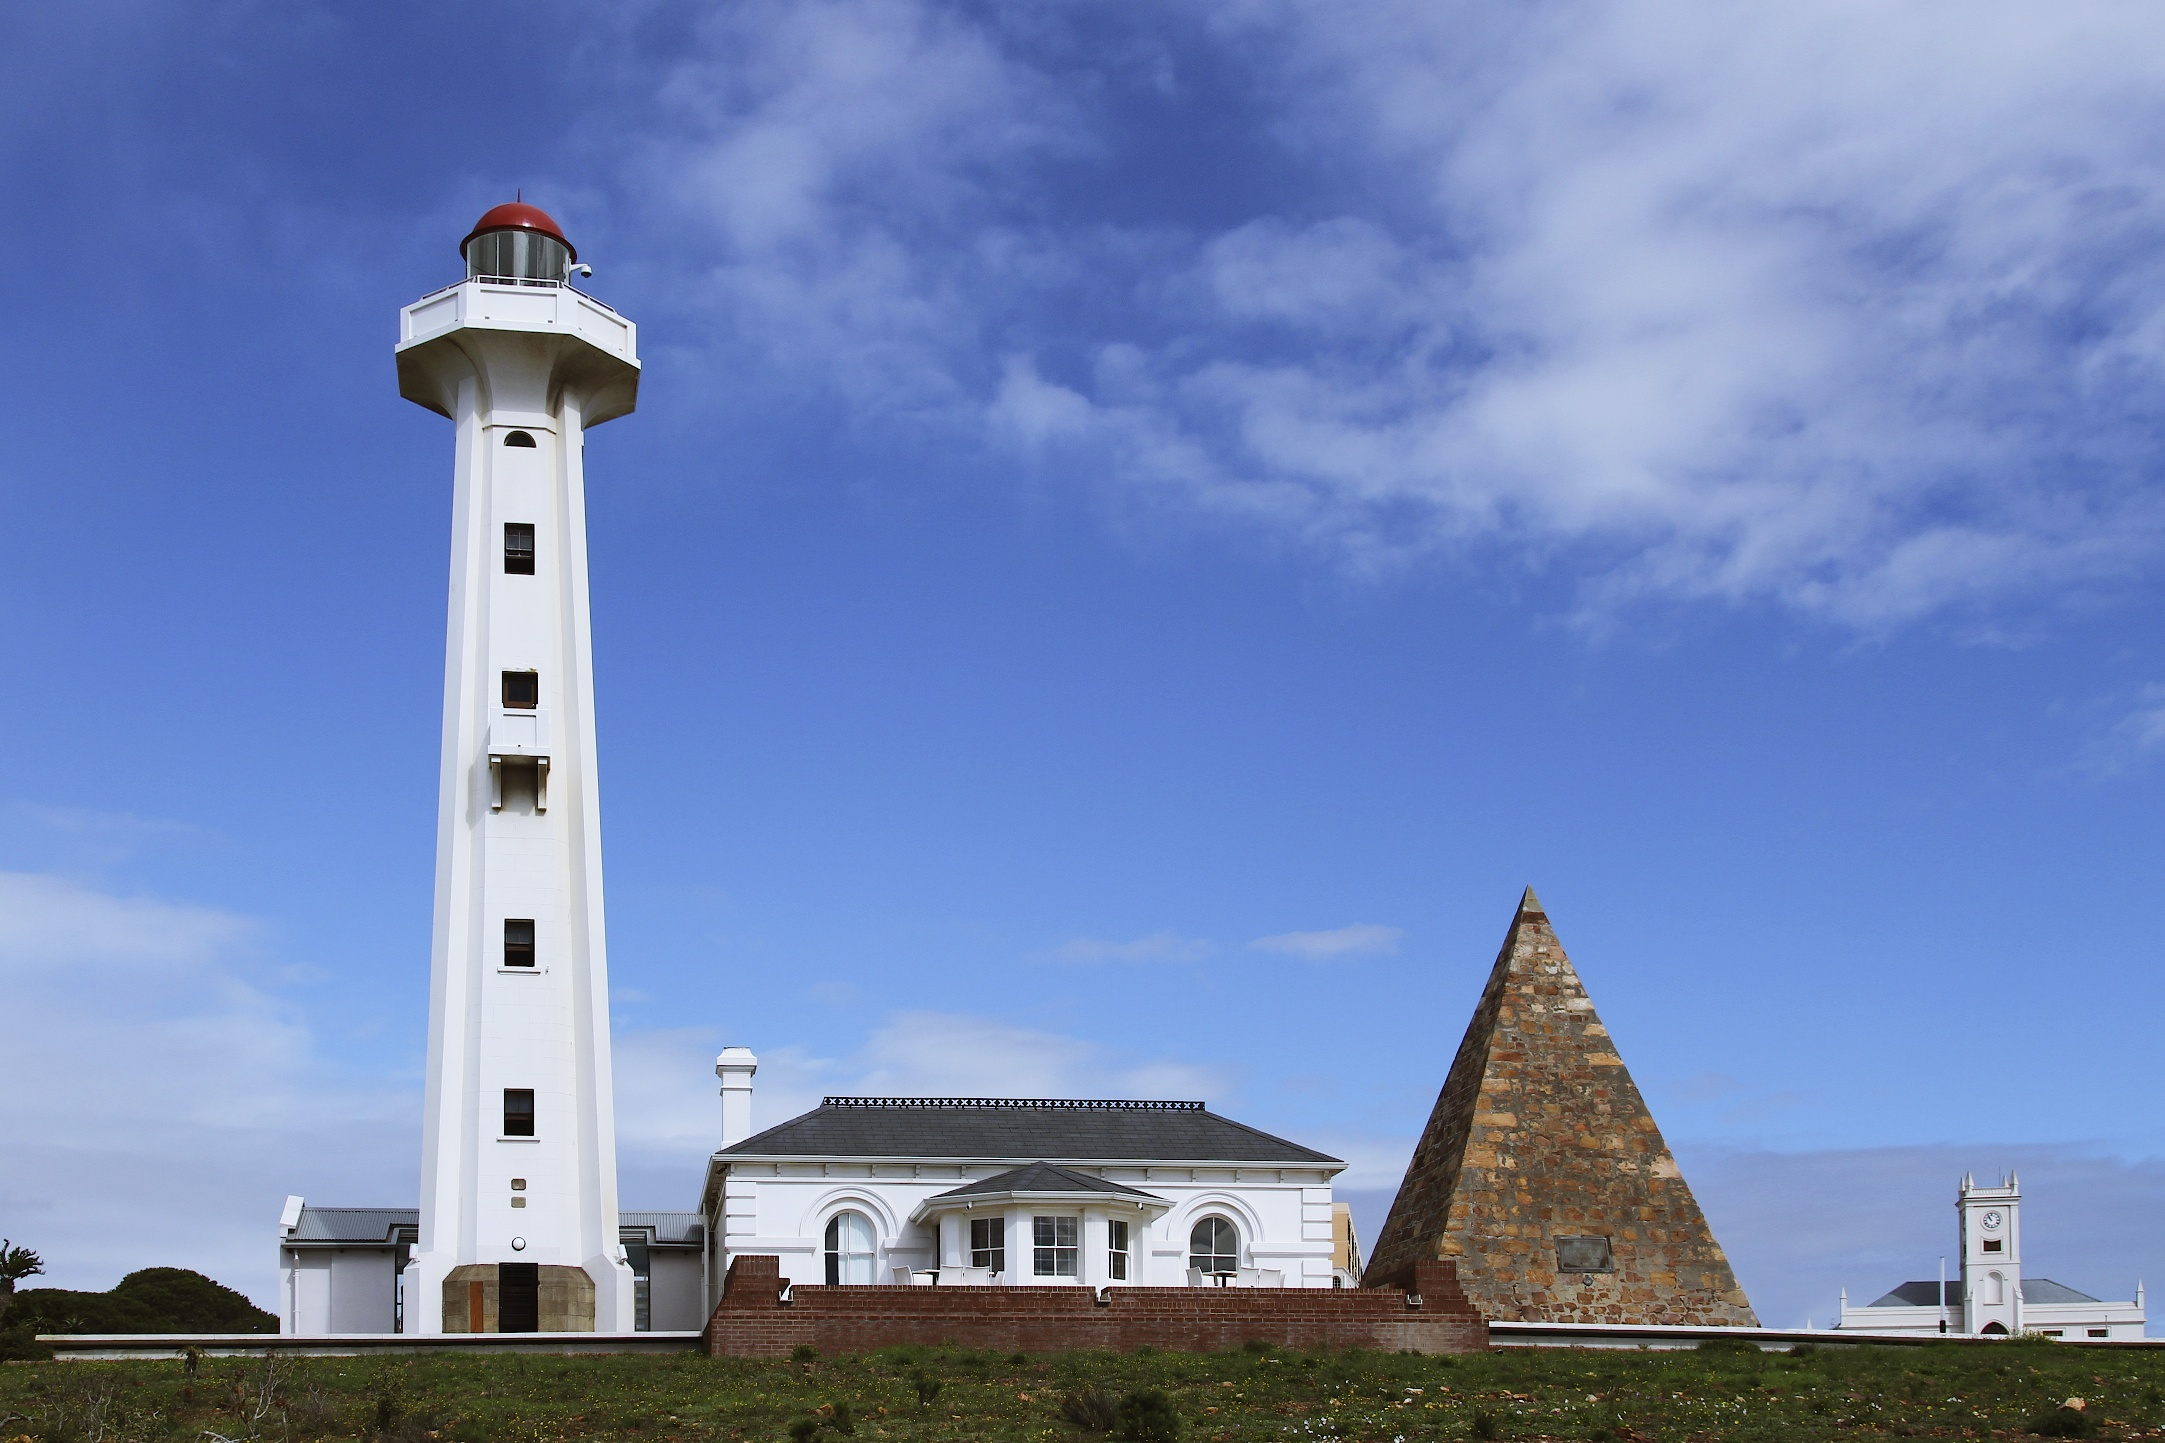 The Donkin Reserve.